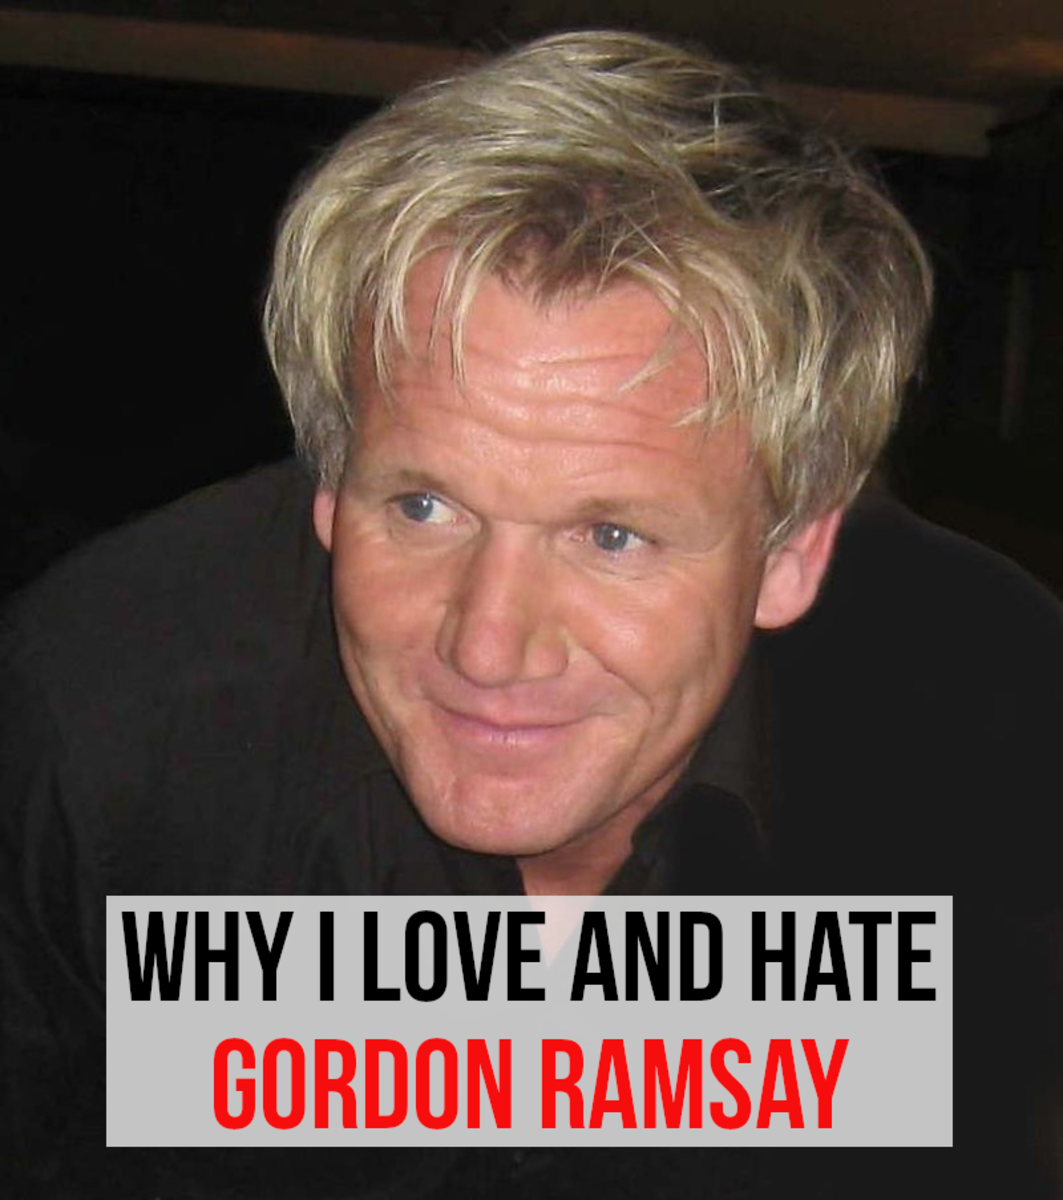 There are many reasons to love and hate the celebrity chef, Gordon Ramsay - I list the main ones.